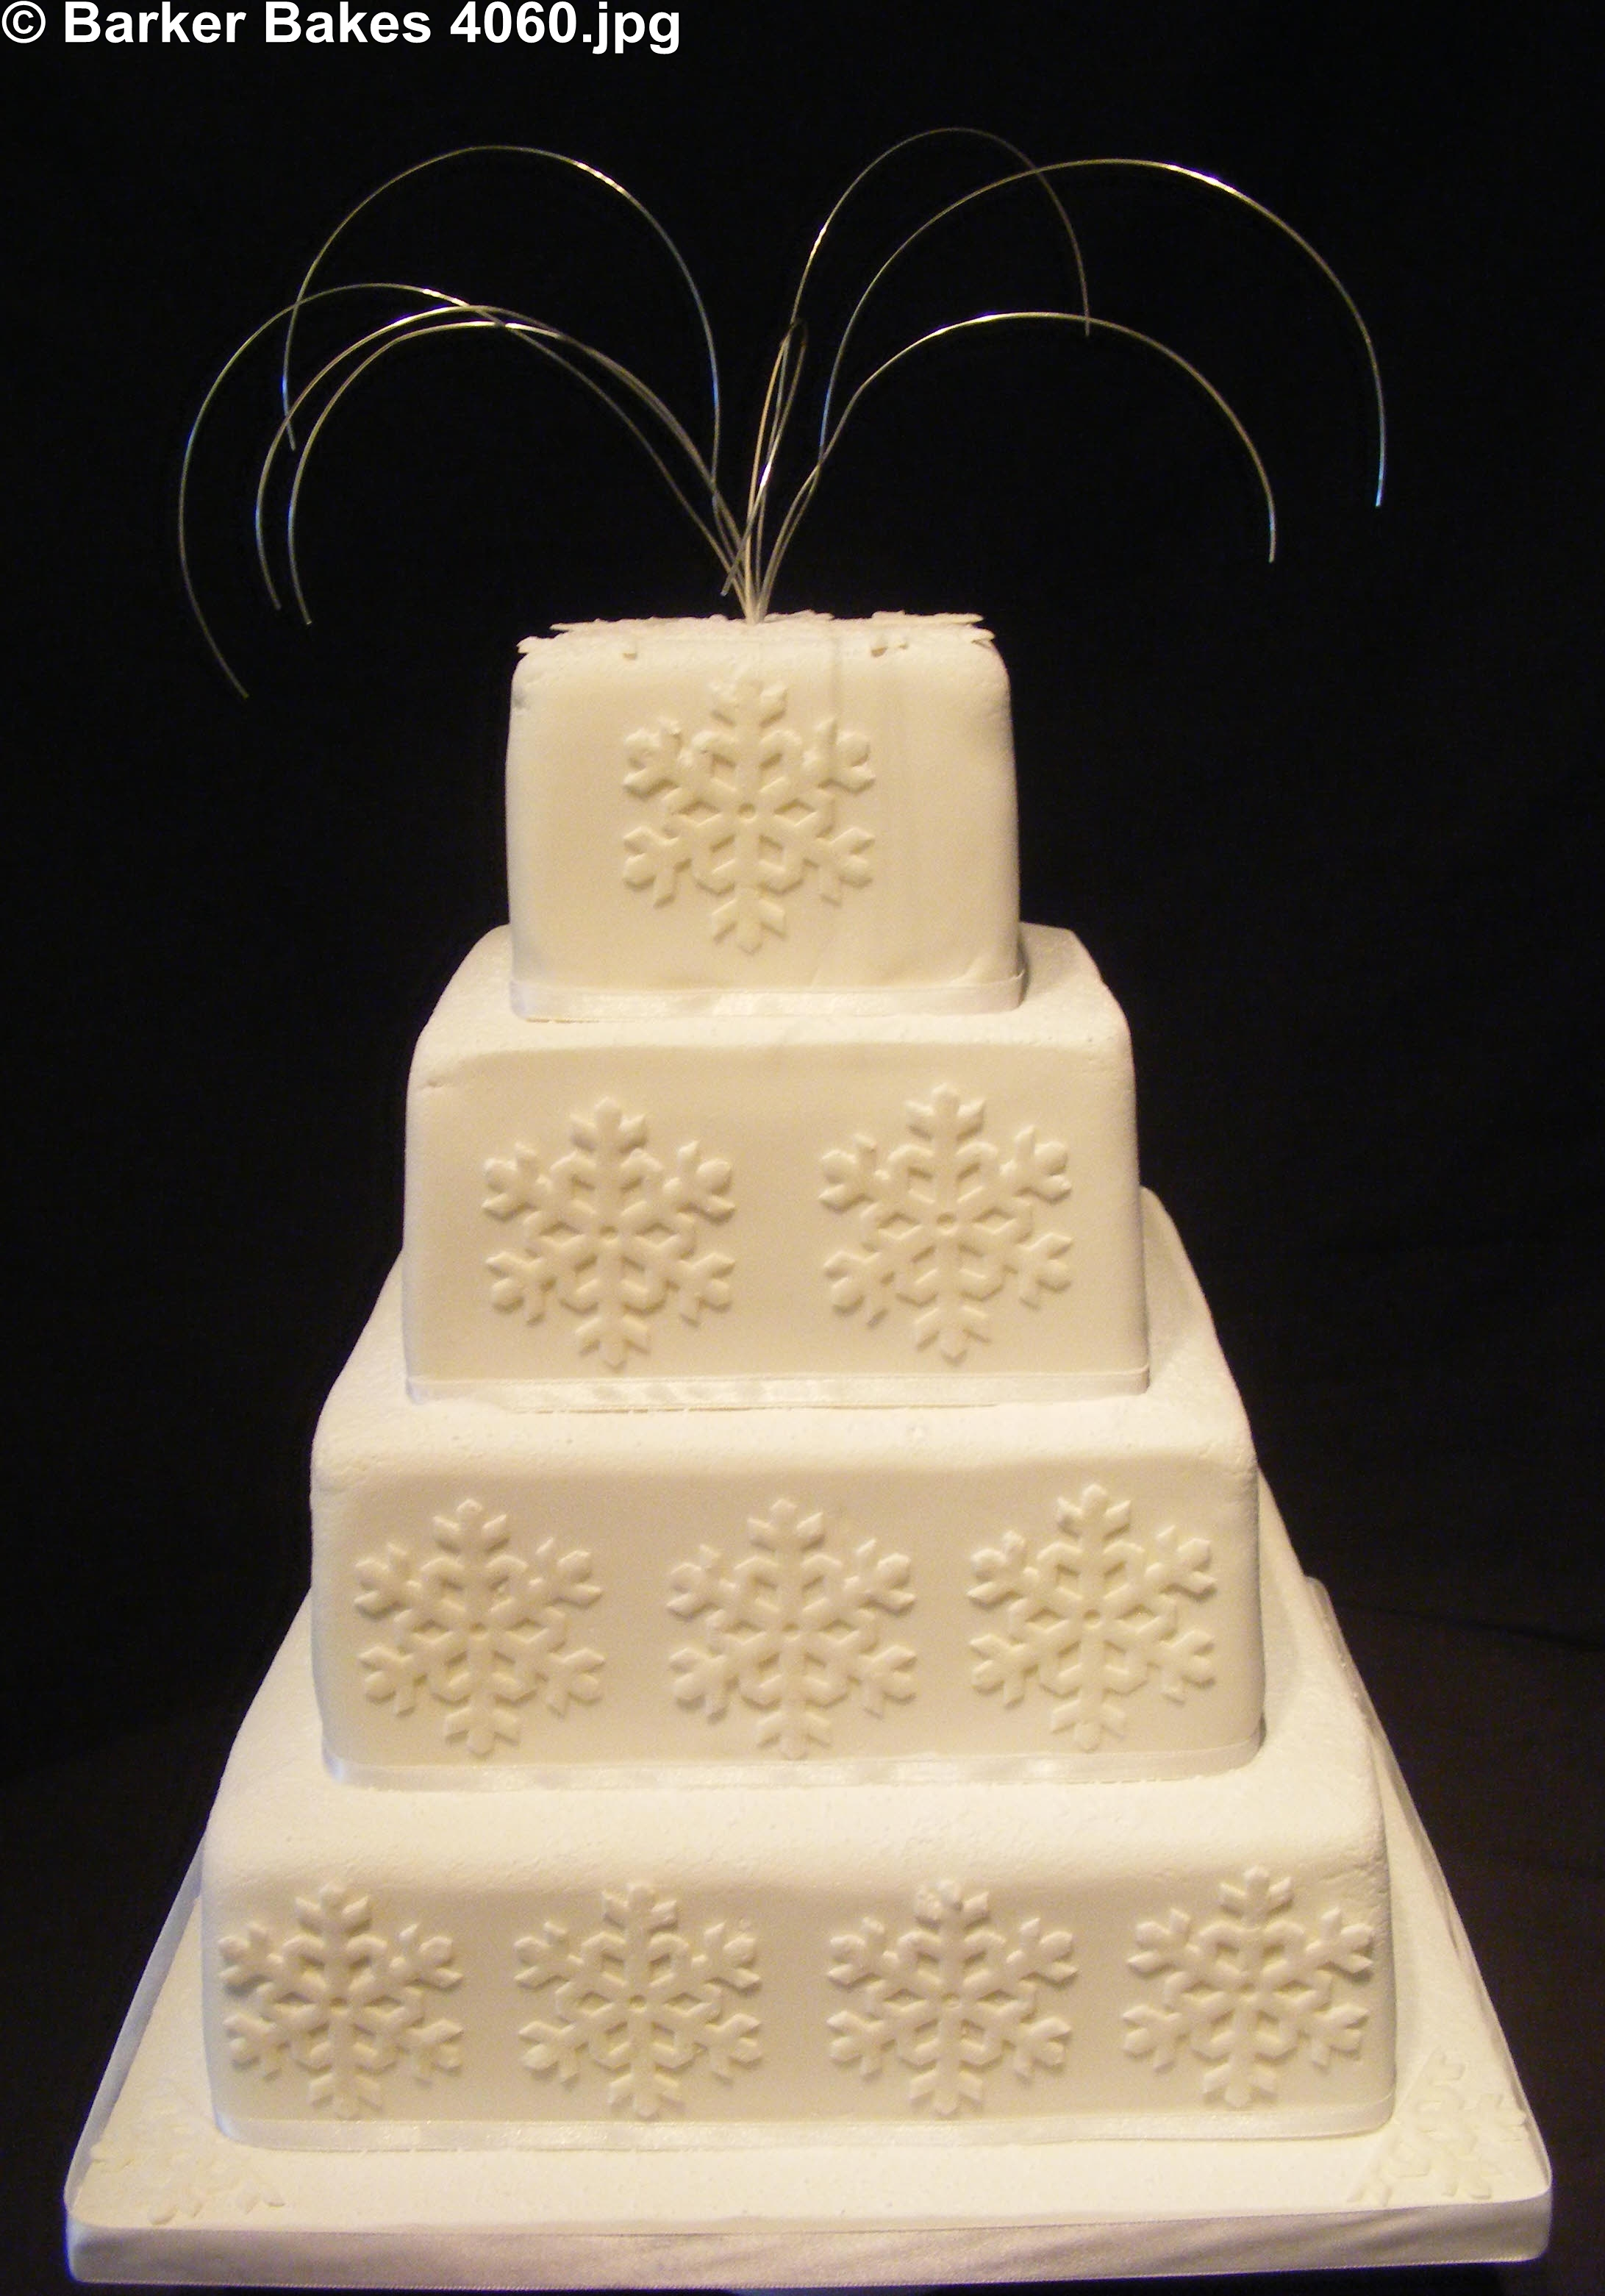 Square Wedding Cakes – Barker Bakes Ltd